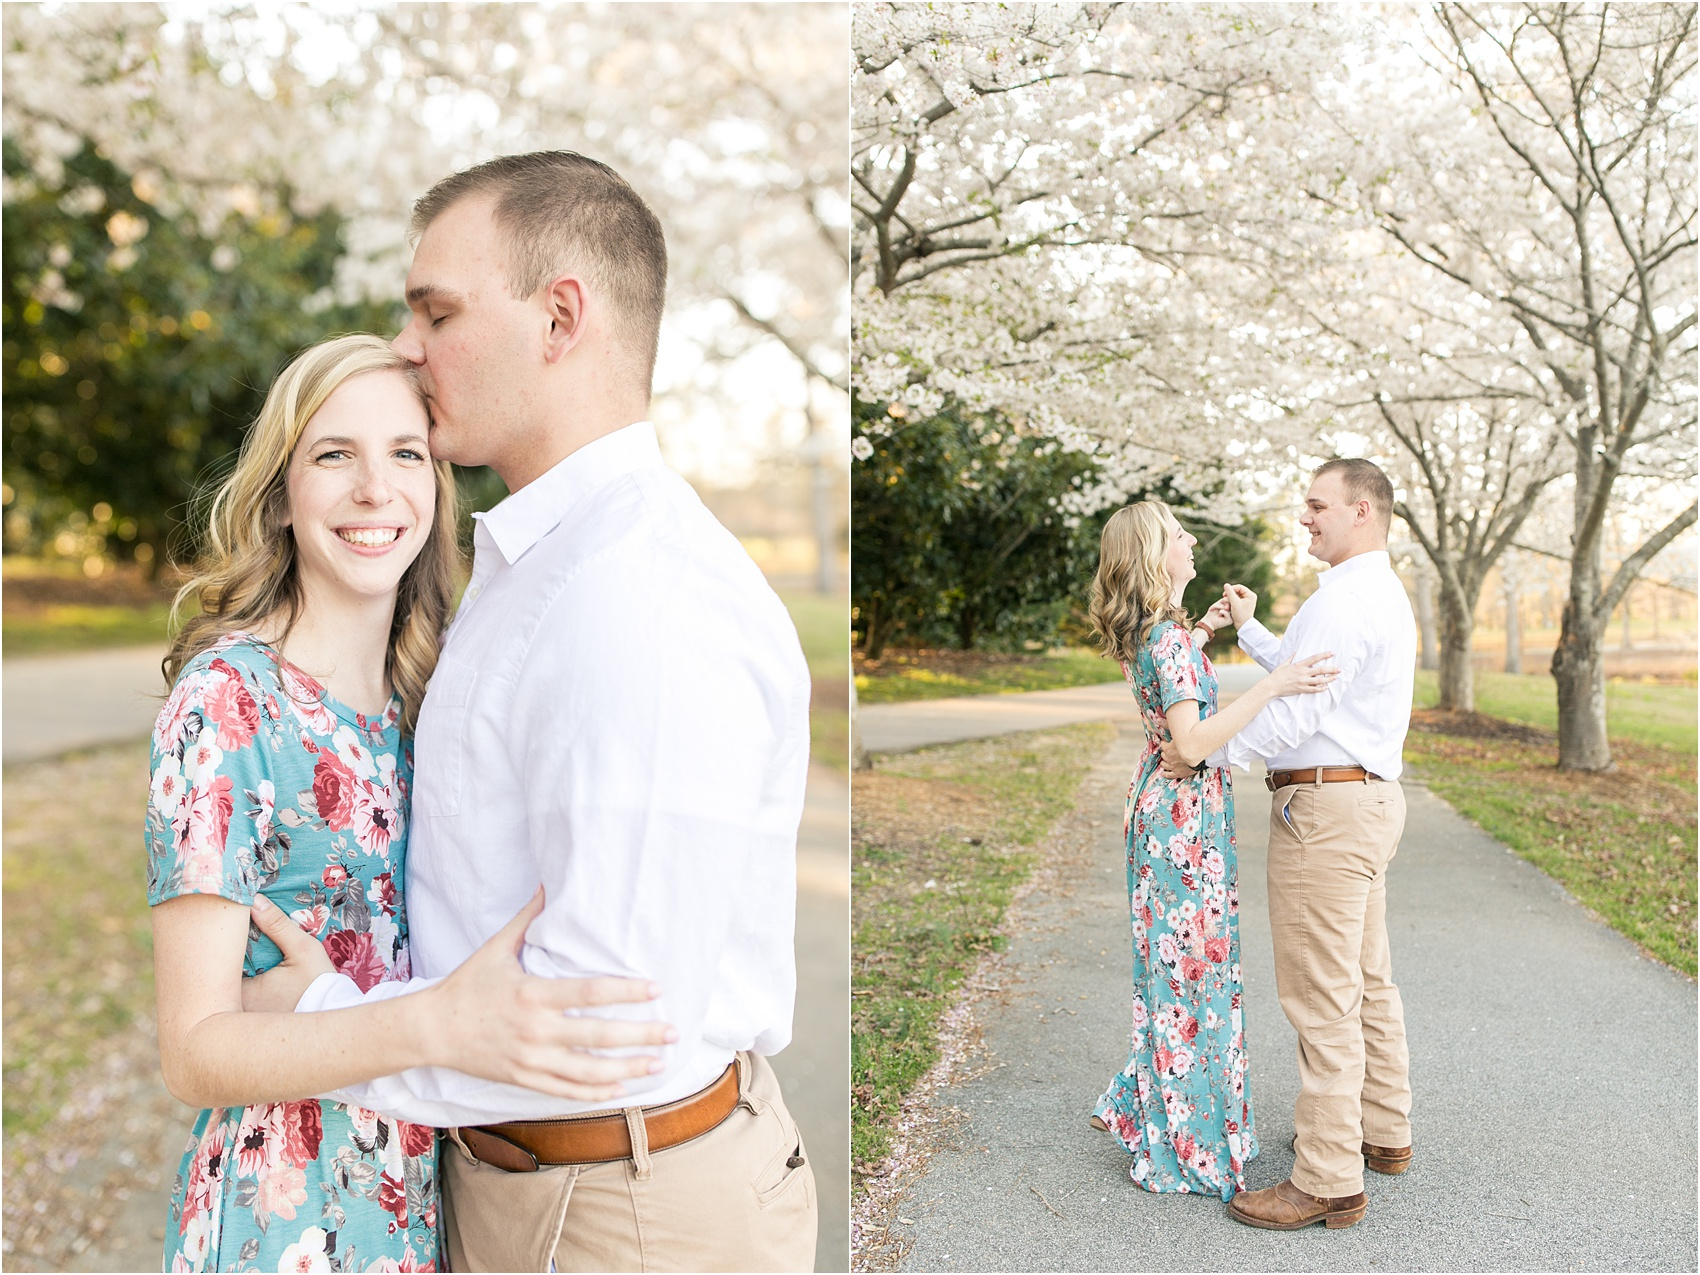 Savannah Eve Photography- Bradshaw-James Engagements-7.jpg